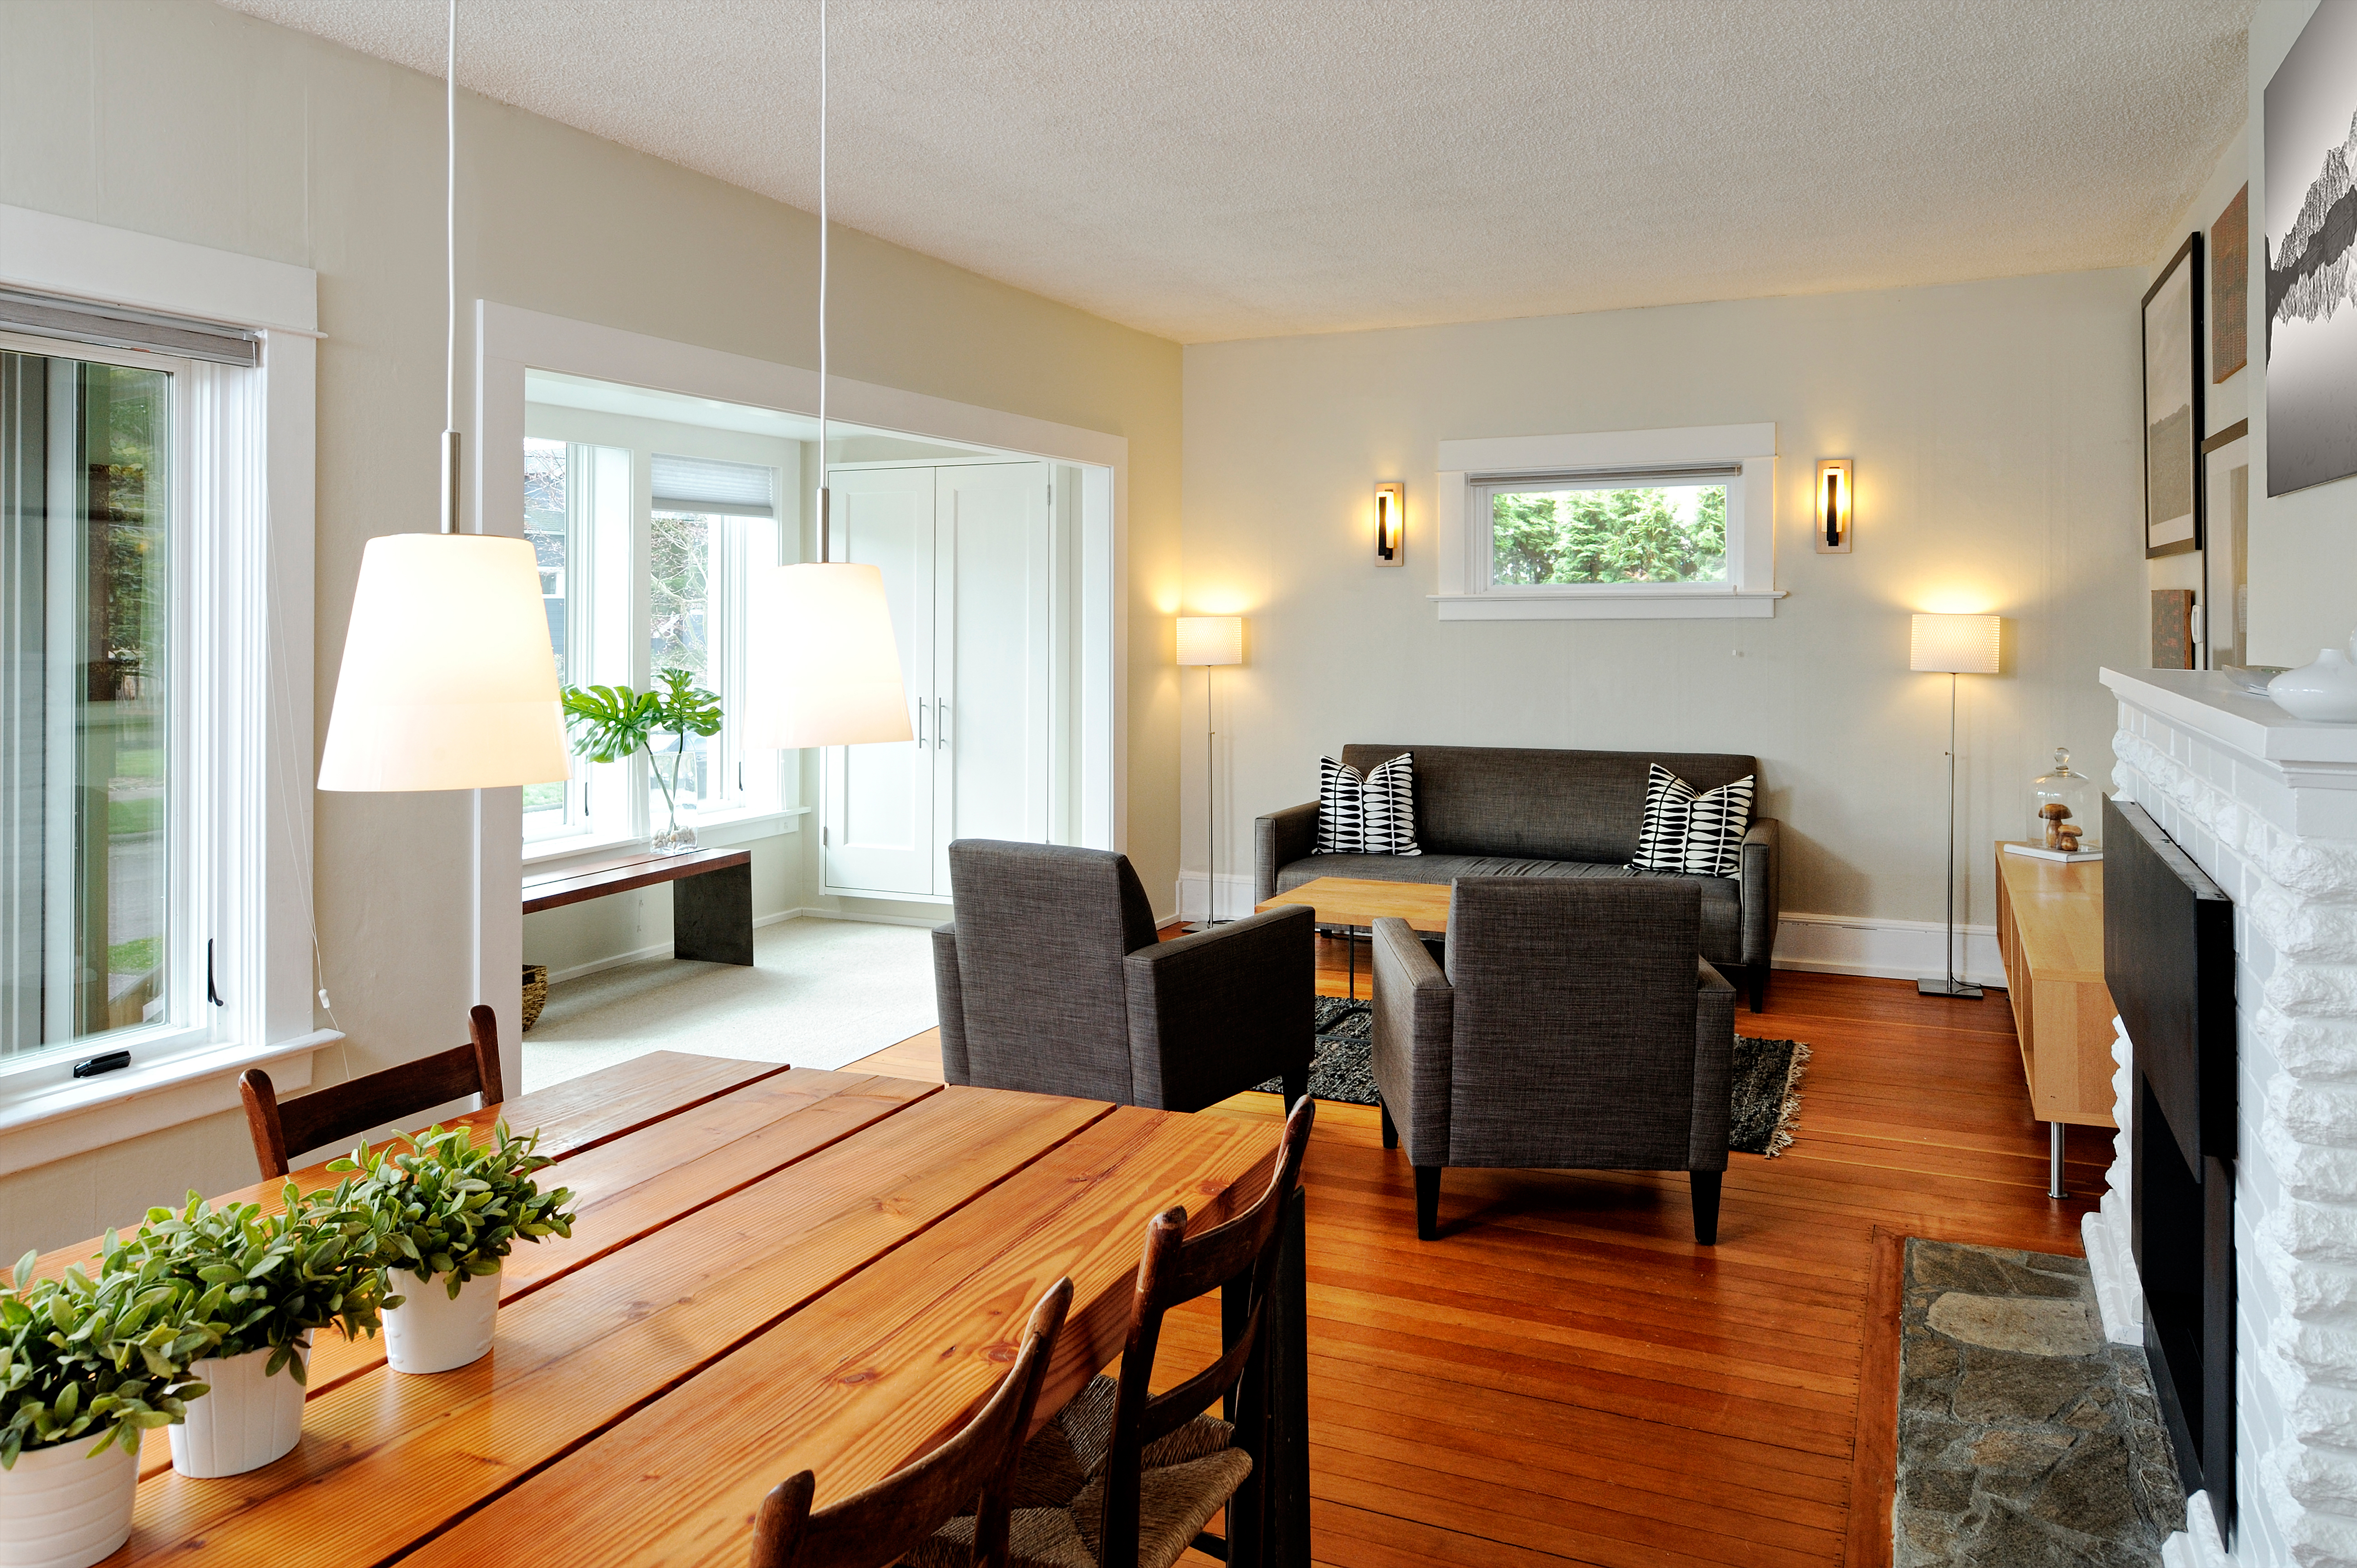 Home Improvement Ideas for Less Than $1,000: Kitchen and ...